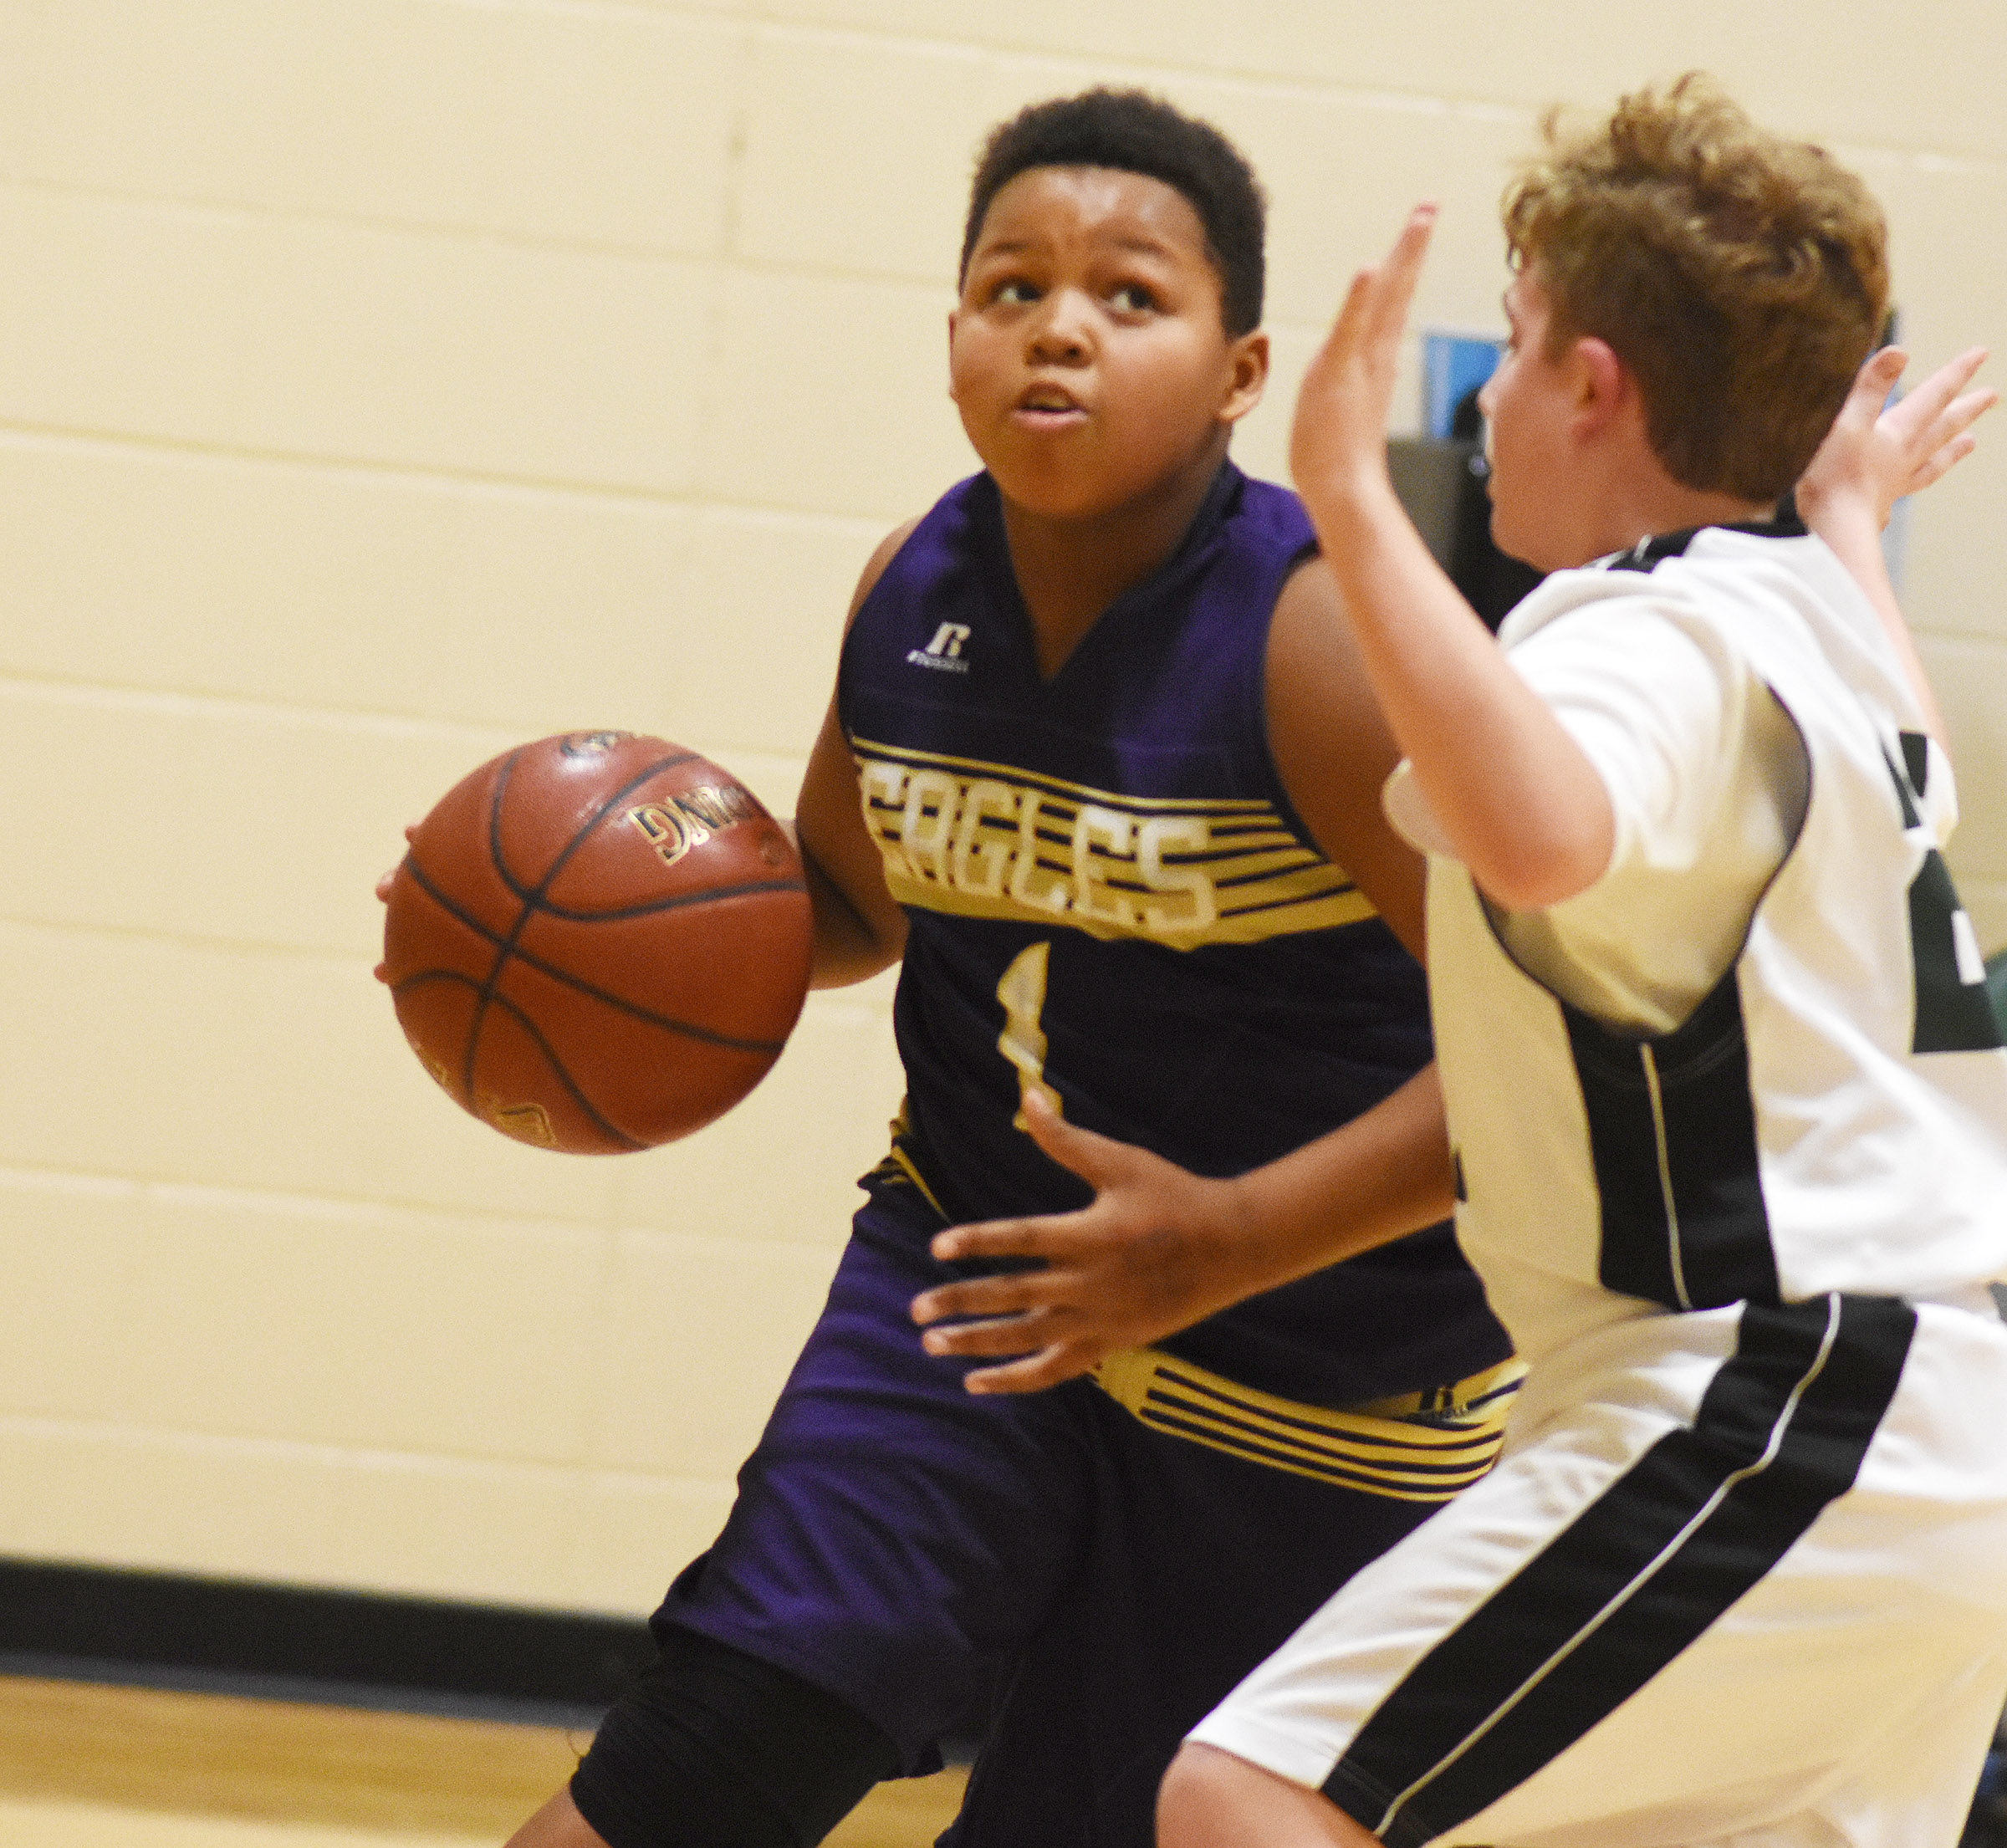 CMS seventh-grader Keondre Weathers drives the ball to the basket.